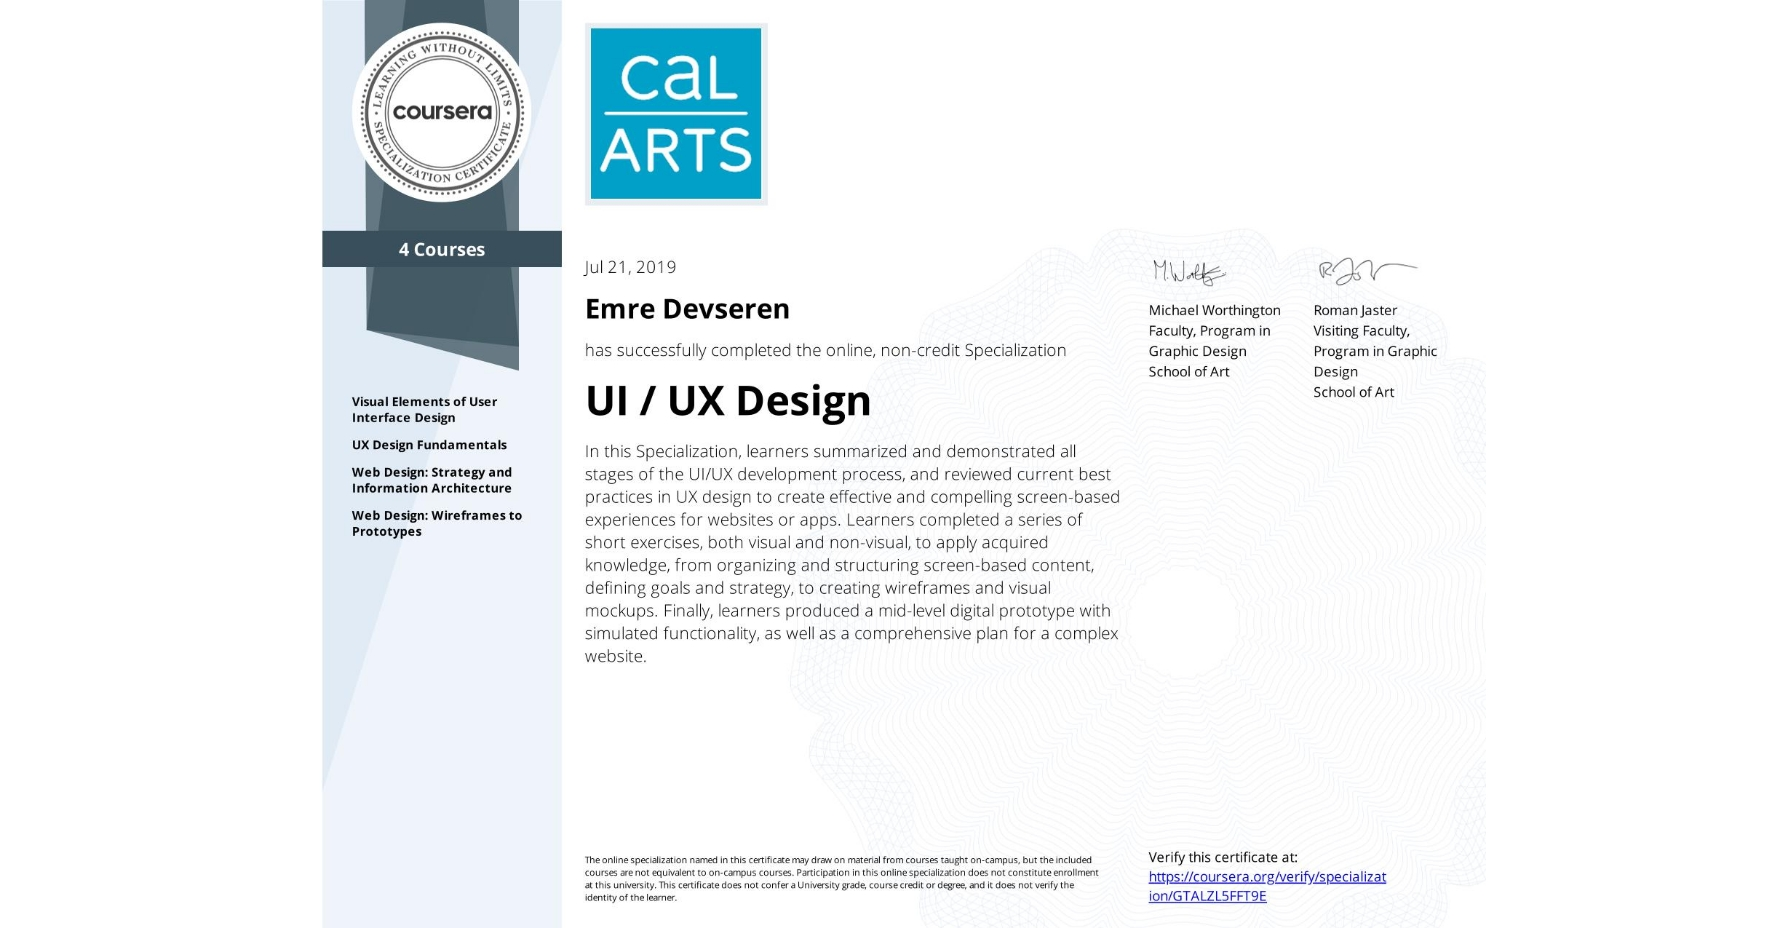 View certificate for Emre Devseren, UI / UX Design, offered through Coursera. In this Specialization, learners summarized and demonstrated all stages of the UI/UX development process, and reviewed current best practices in UX design to create effective and compelling screen-based experiences for websites or apps. Learners completed a series of short exercises, both visual and non-visual, to apply acquired knowledge, from organizing and structuring screen-based content, defining goals and strategy, to creating wireframes and visual mockups. Finally, learners produced a mid-level digital prototype with simulated functionality, as well as a comprehensive plan for a complex website.